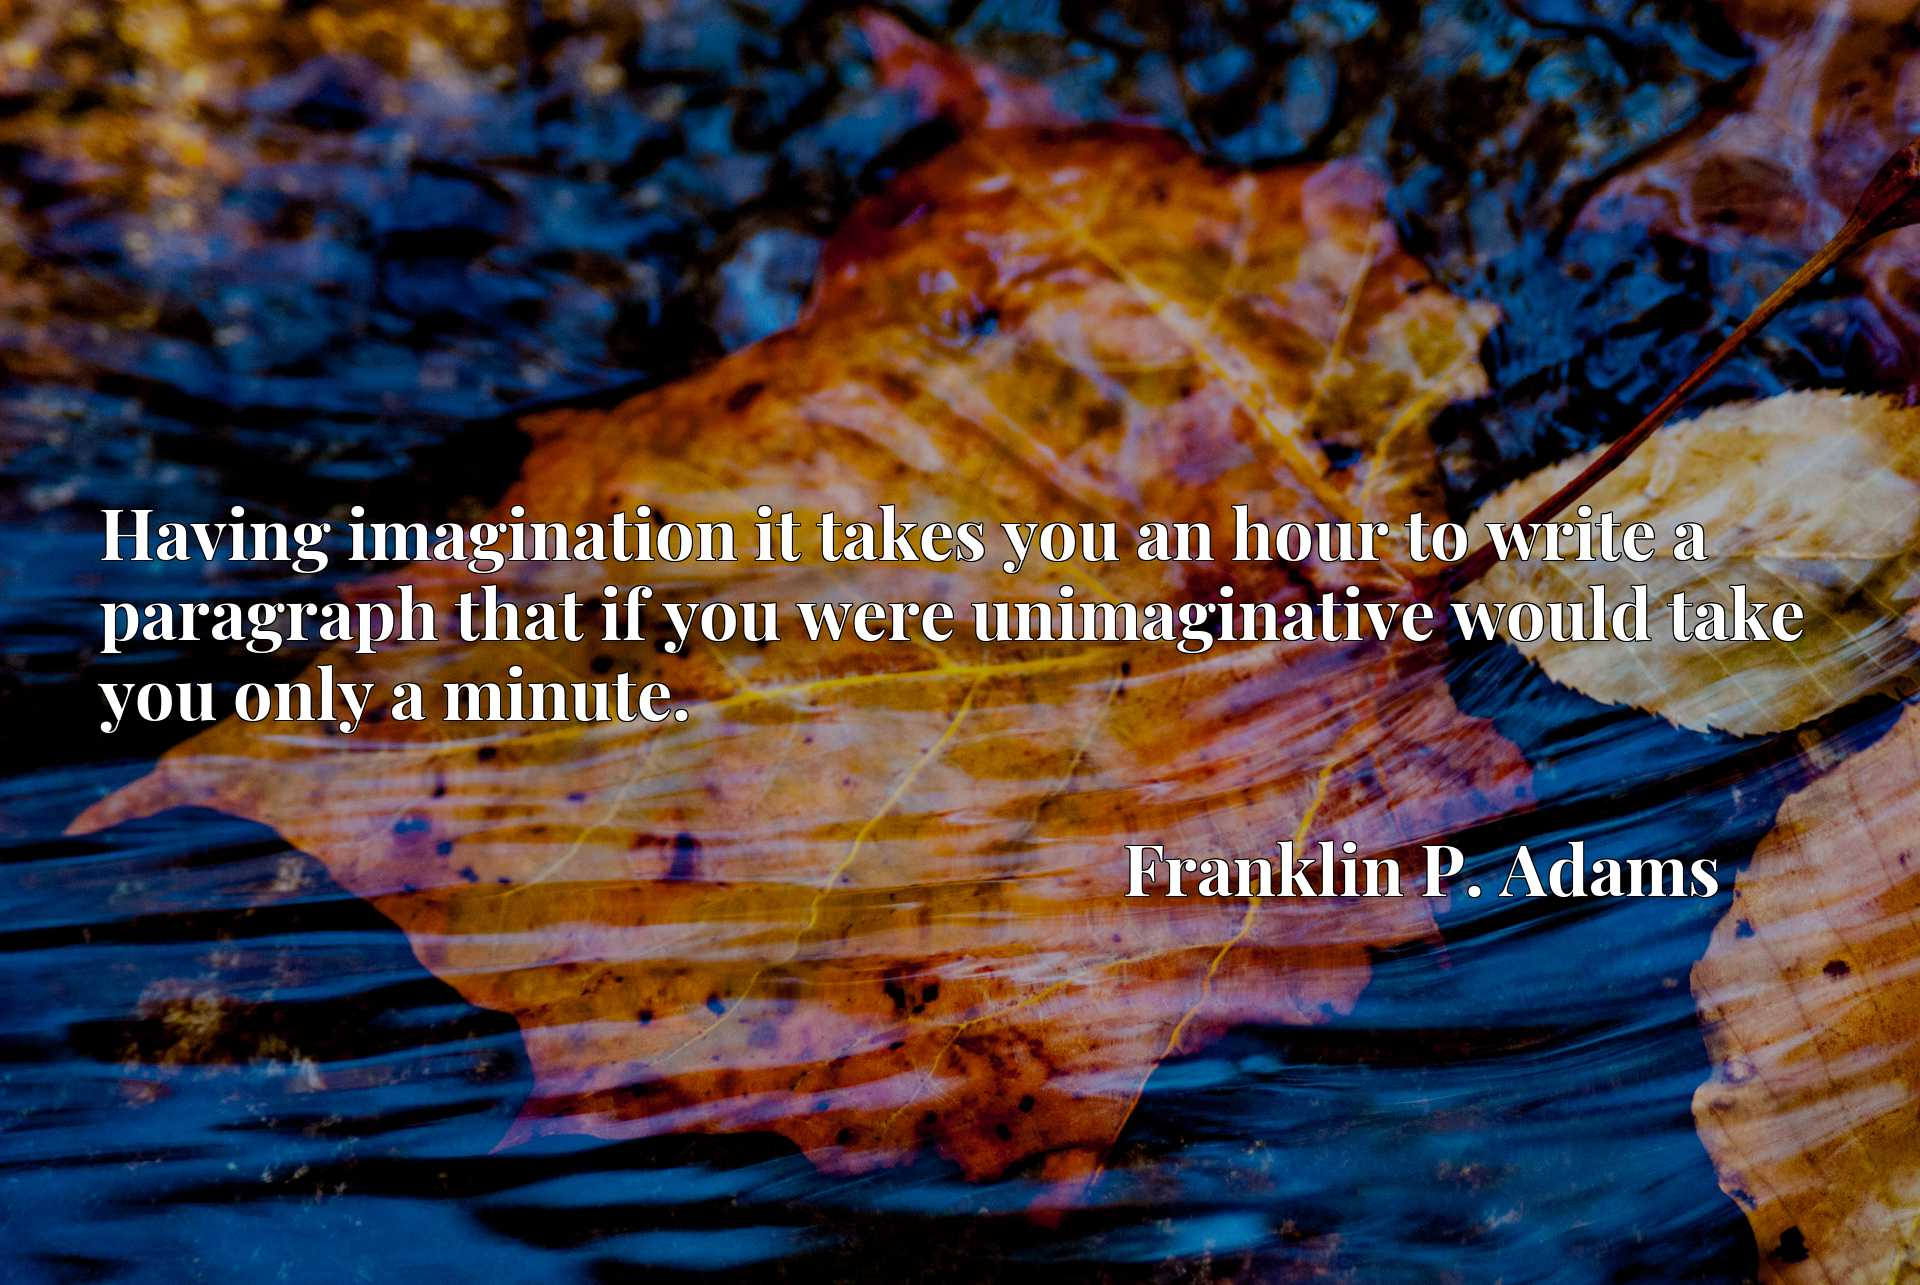 Quote Picture :Having imagination it takes you an hour to write a paragraph that if you were unimaginative would take you only a minute.